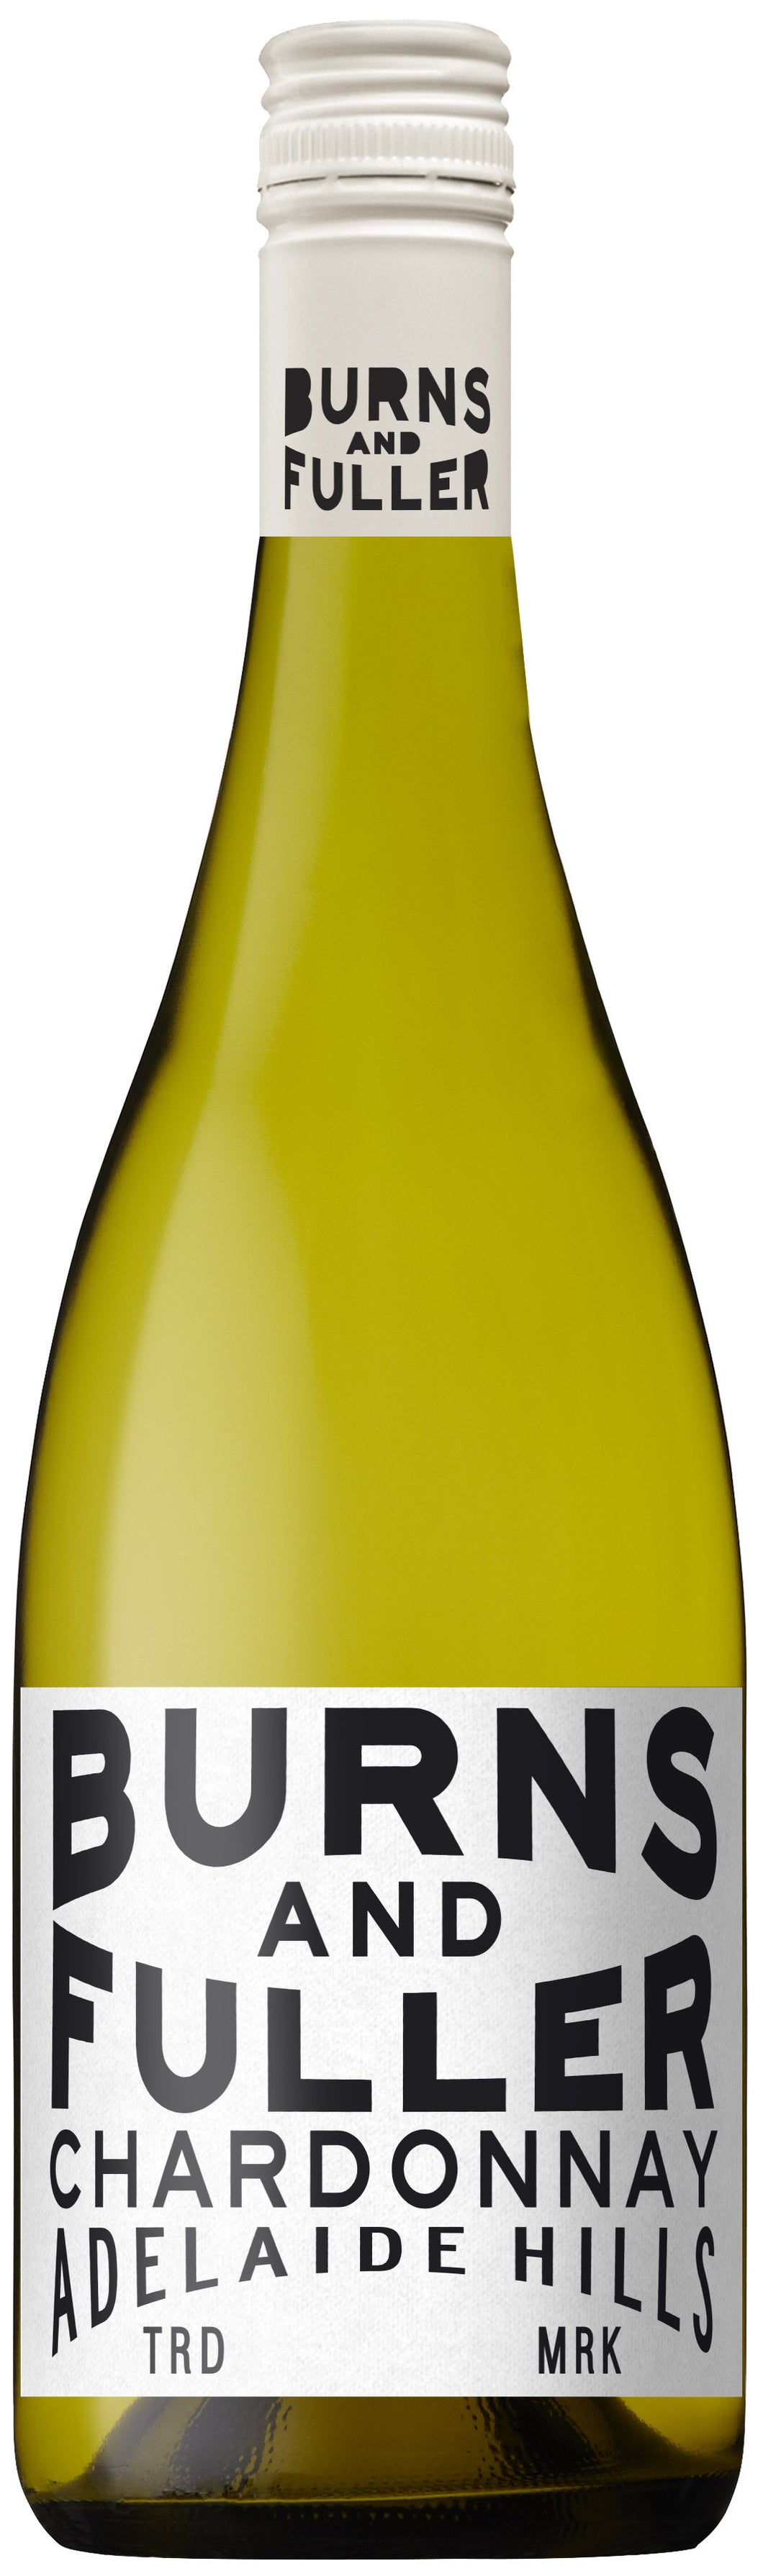 Burns and Fuller Adelaide Hills Chardonnay 2016 - Network Wines